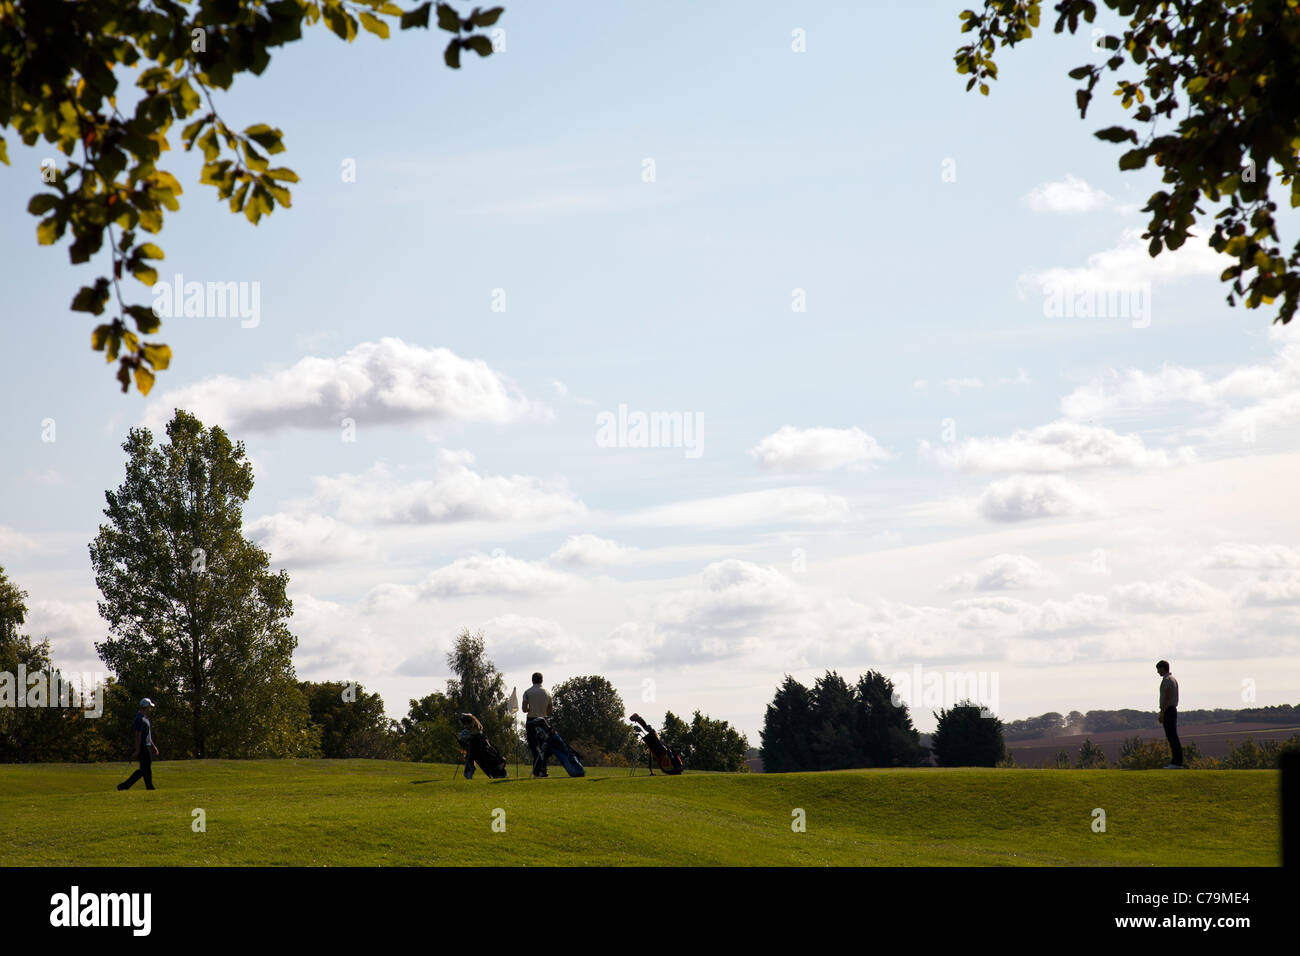 Louth, Lincolnshire, England, three, 3, golfers lining up a shot on crowtree golf course putting green golfing golfers - Stock Image